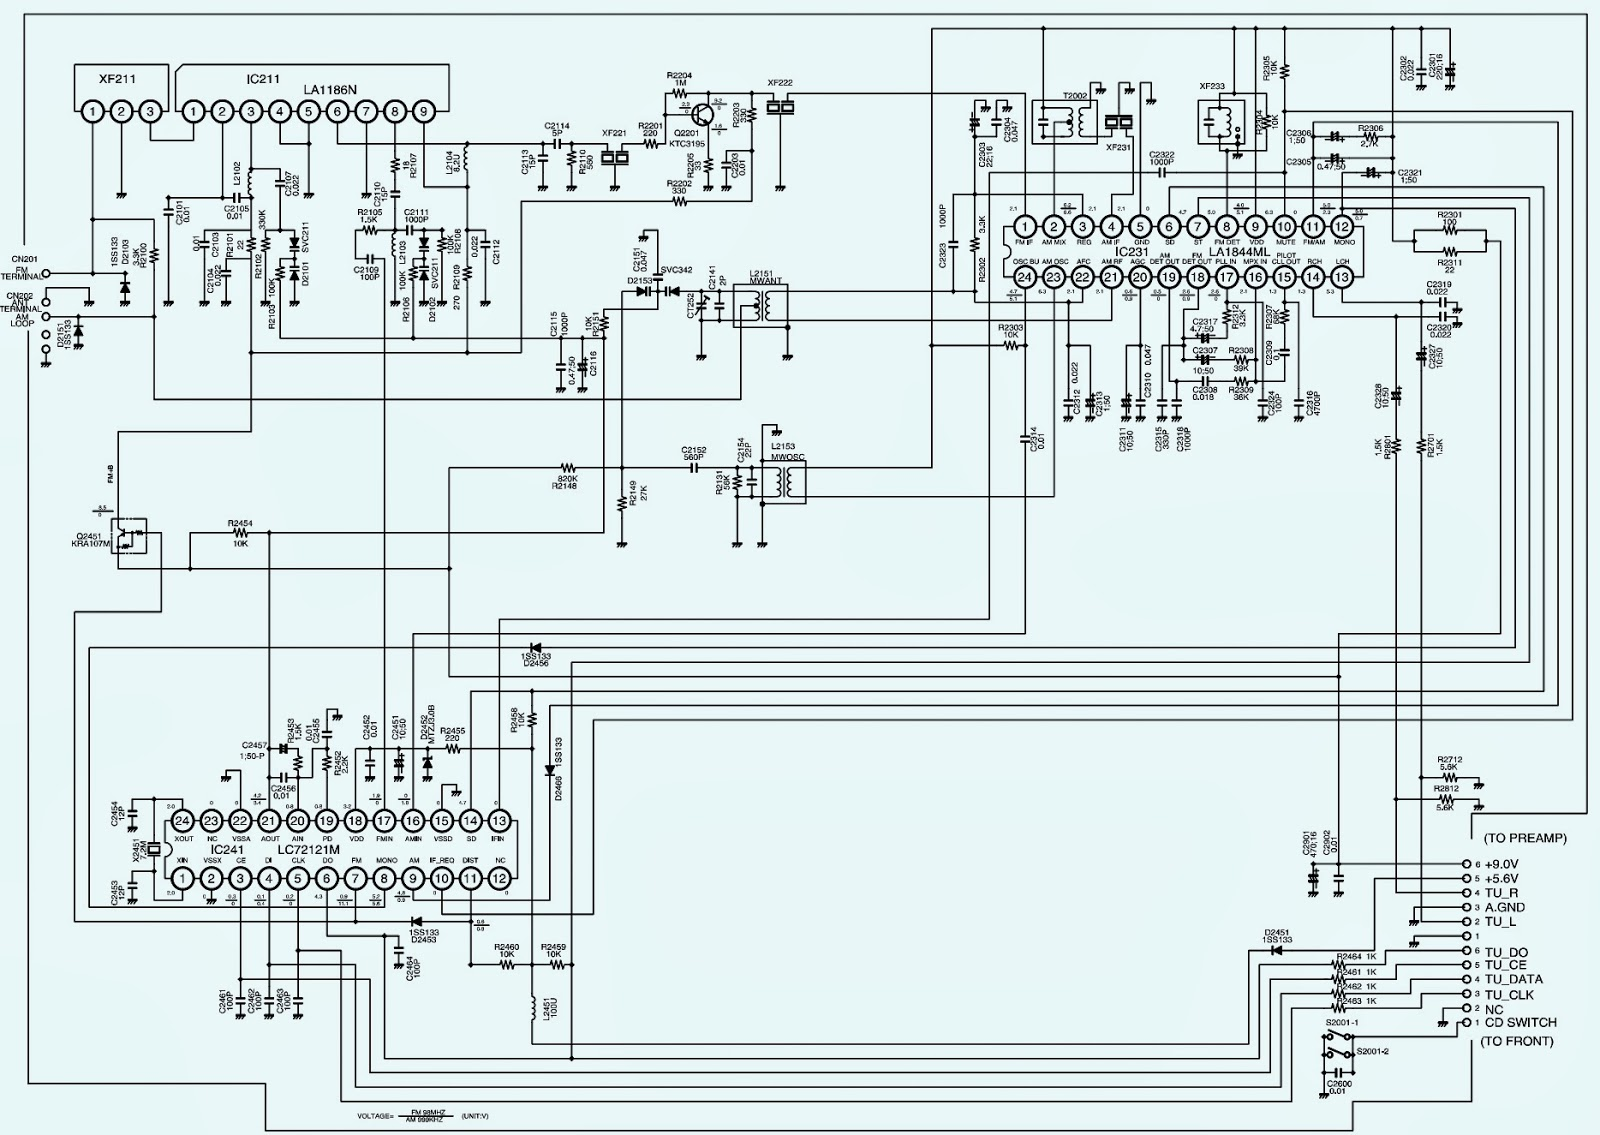 sanyo golf cart wiring diagram wiring diagram sanyo golf cart wiring diagram sanyo golf cart wiring diagram [ 1600 x 1135 Pixel ]